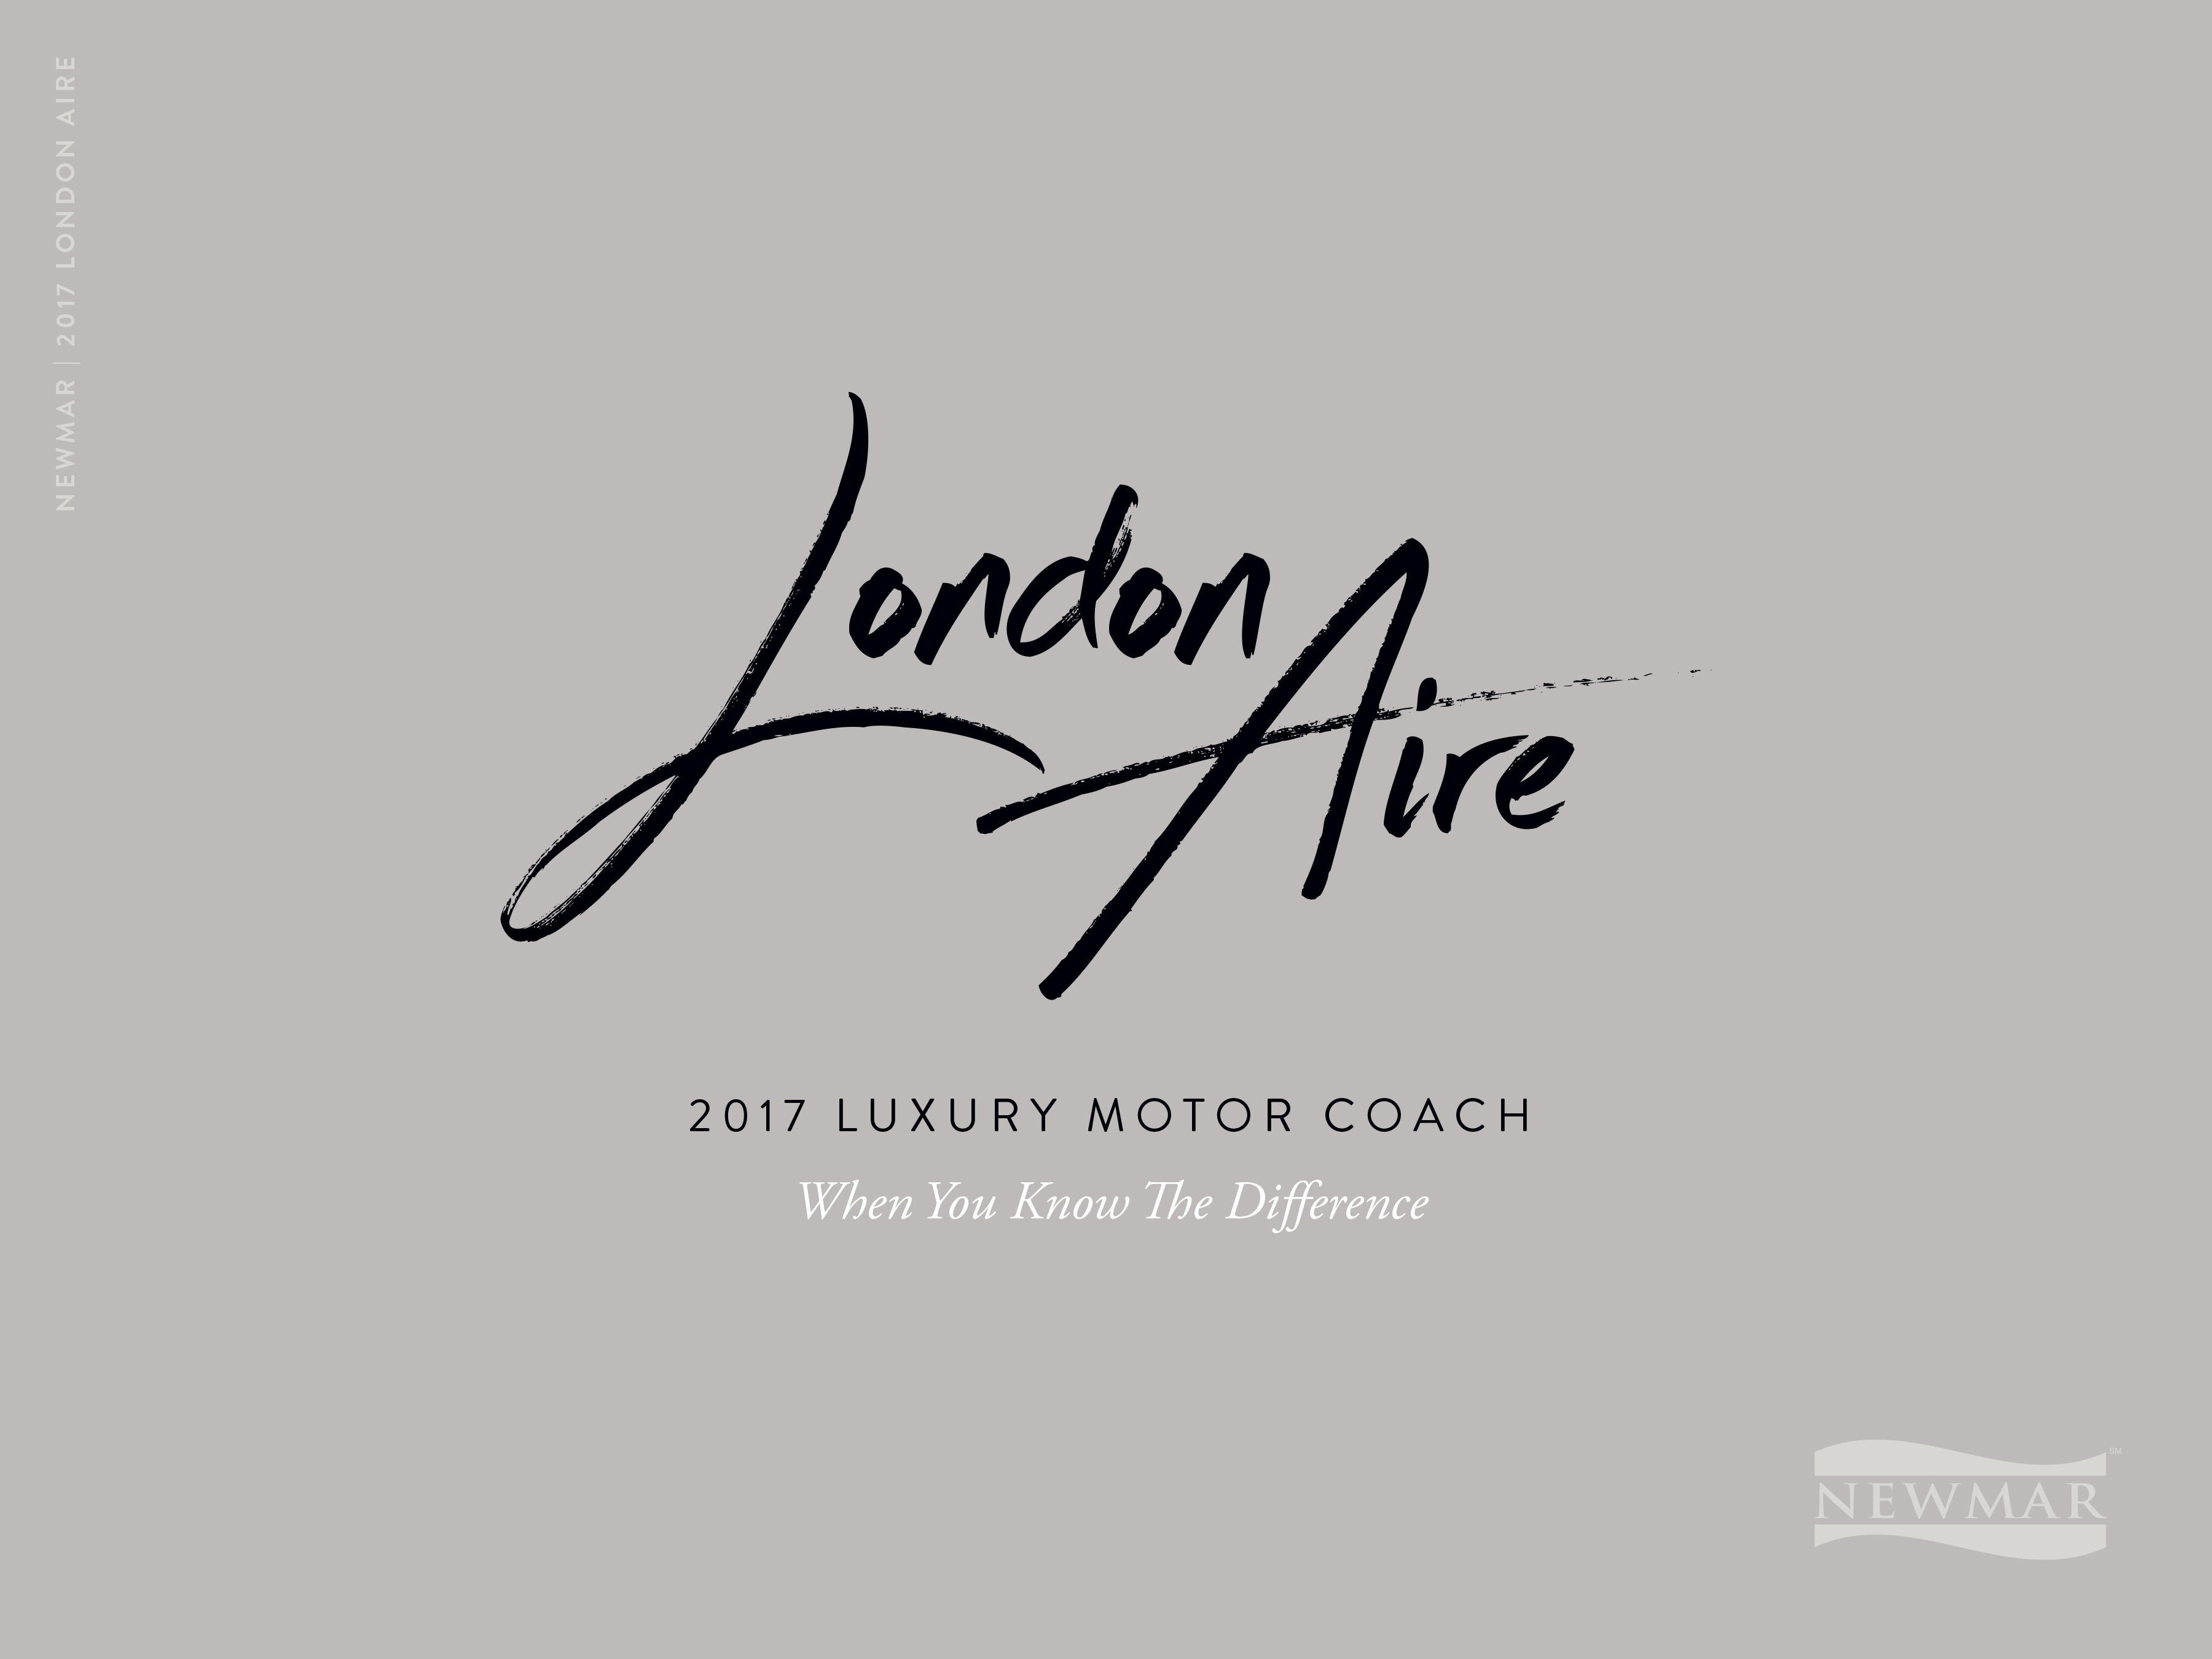 2017 London Aire